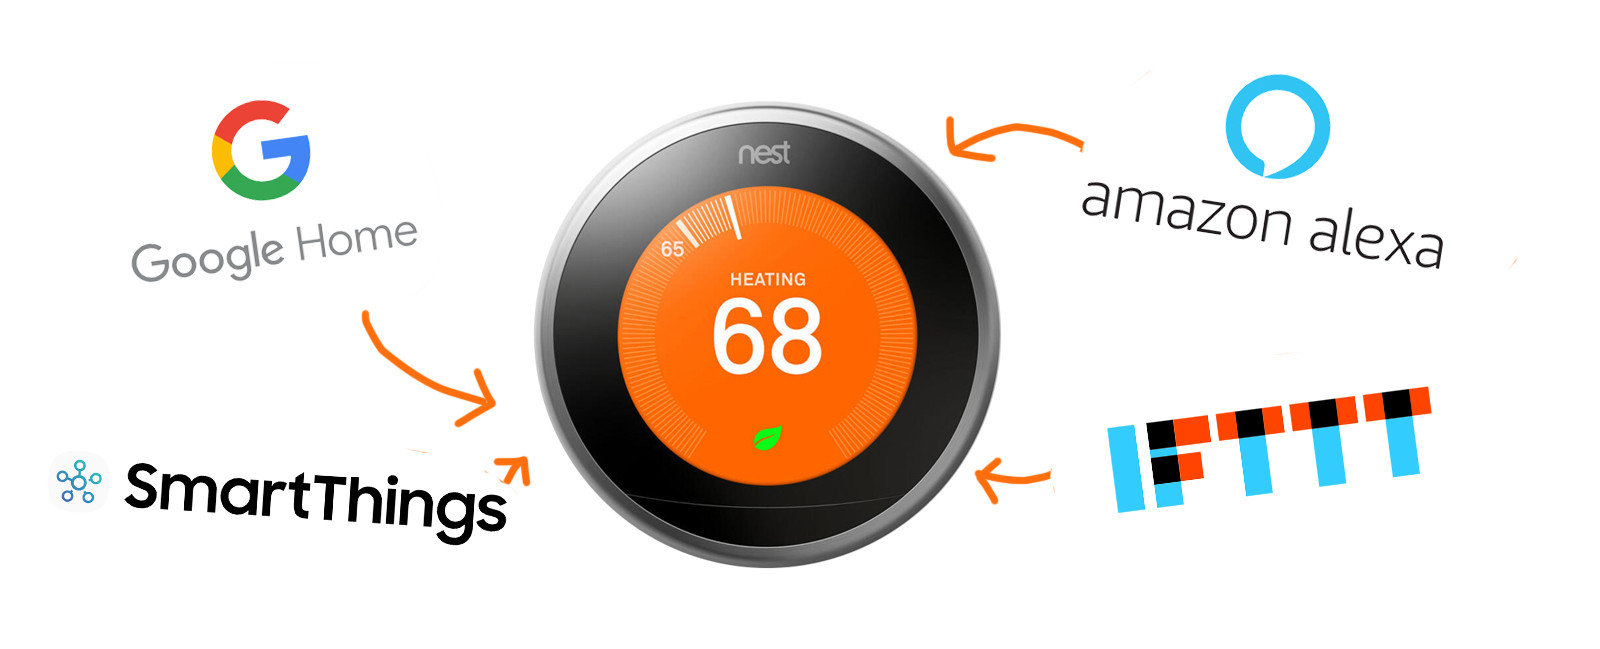 Nest Thermostat Compatibility